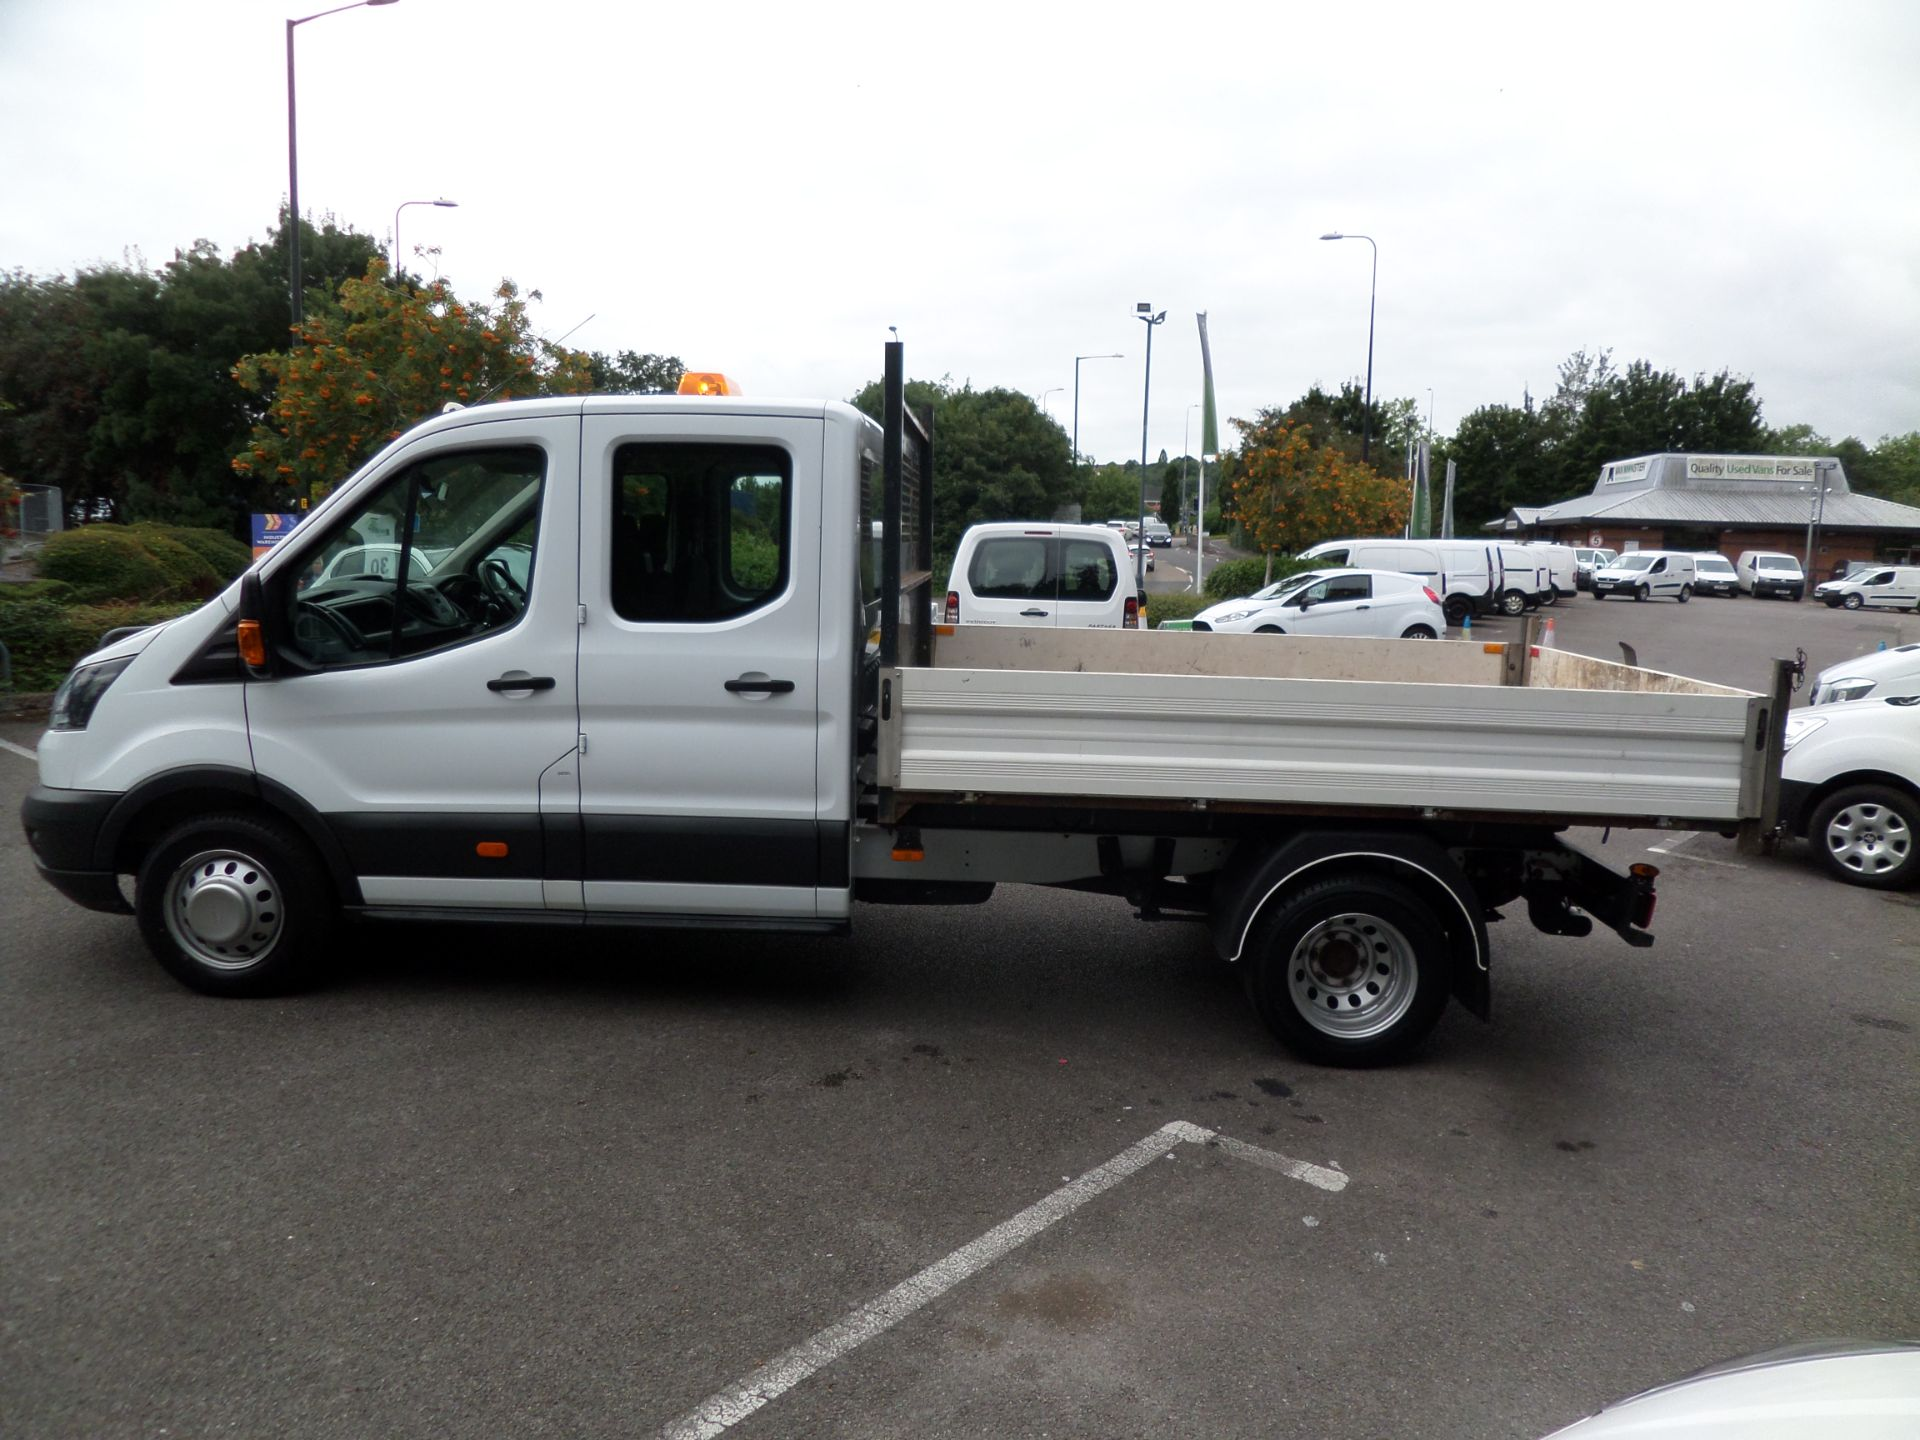 2018 Ford Transit 2.0 Tdci 130Ps Double Cab Tipper Euro 6 (FP67FCU) Image 6